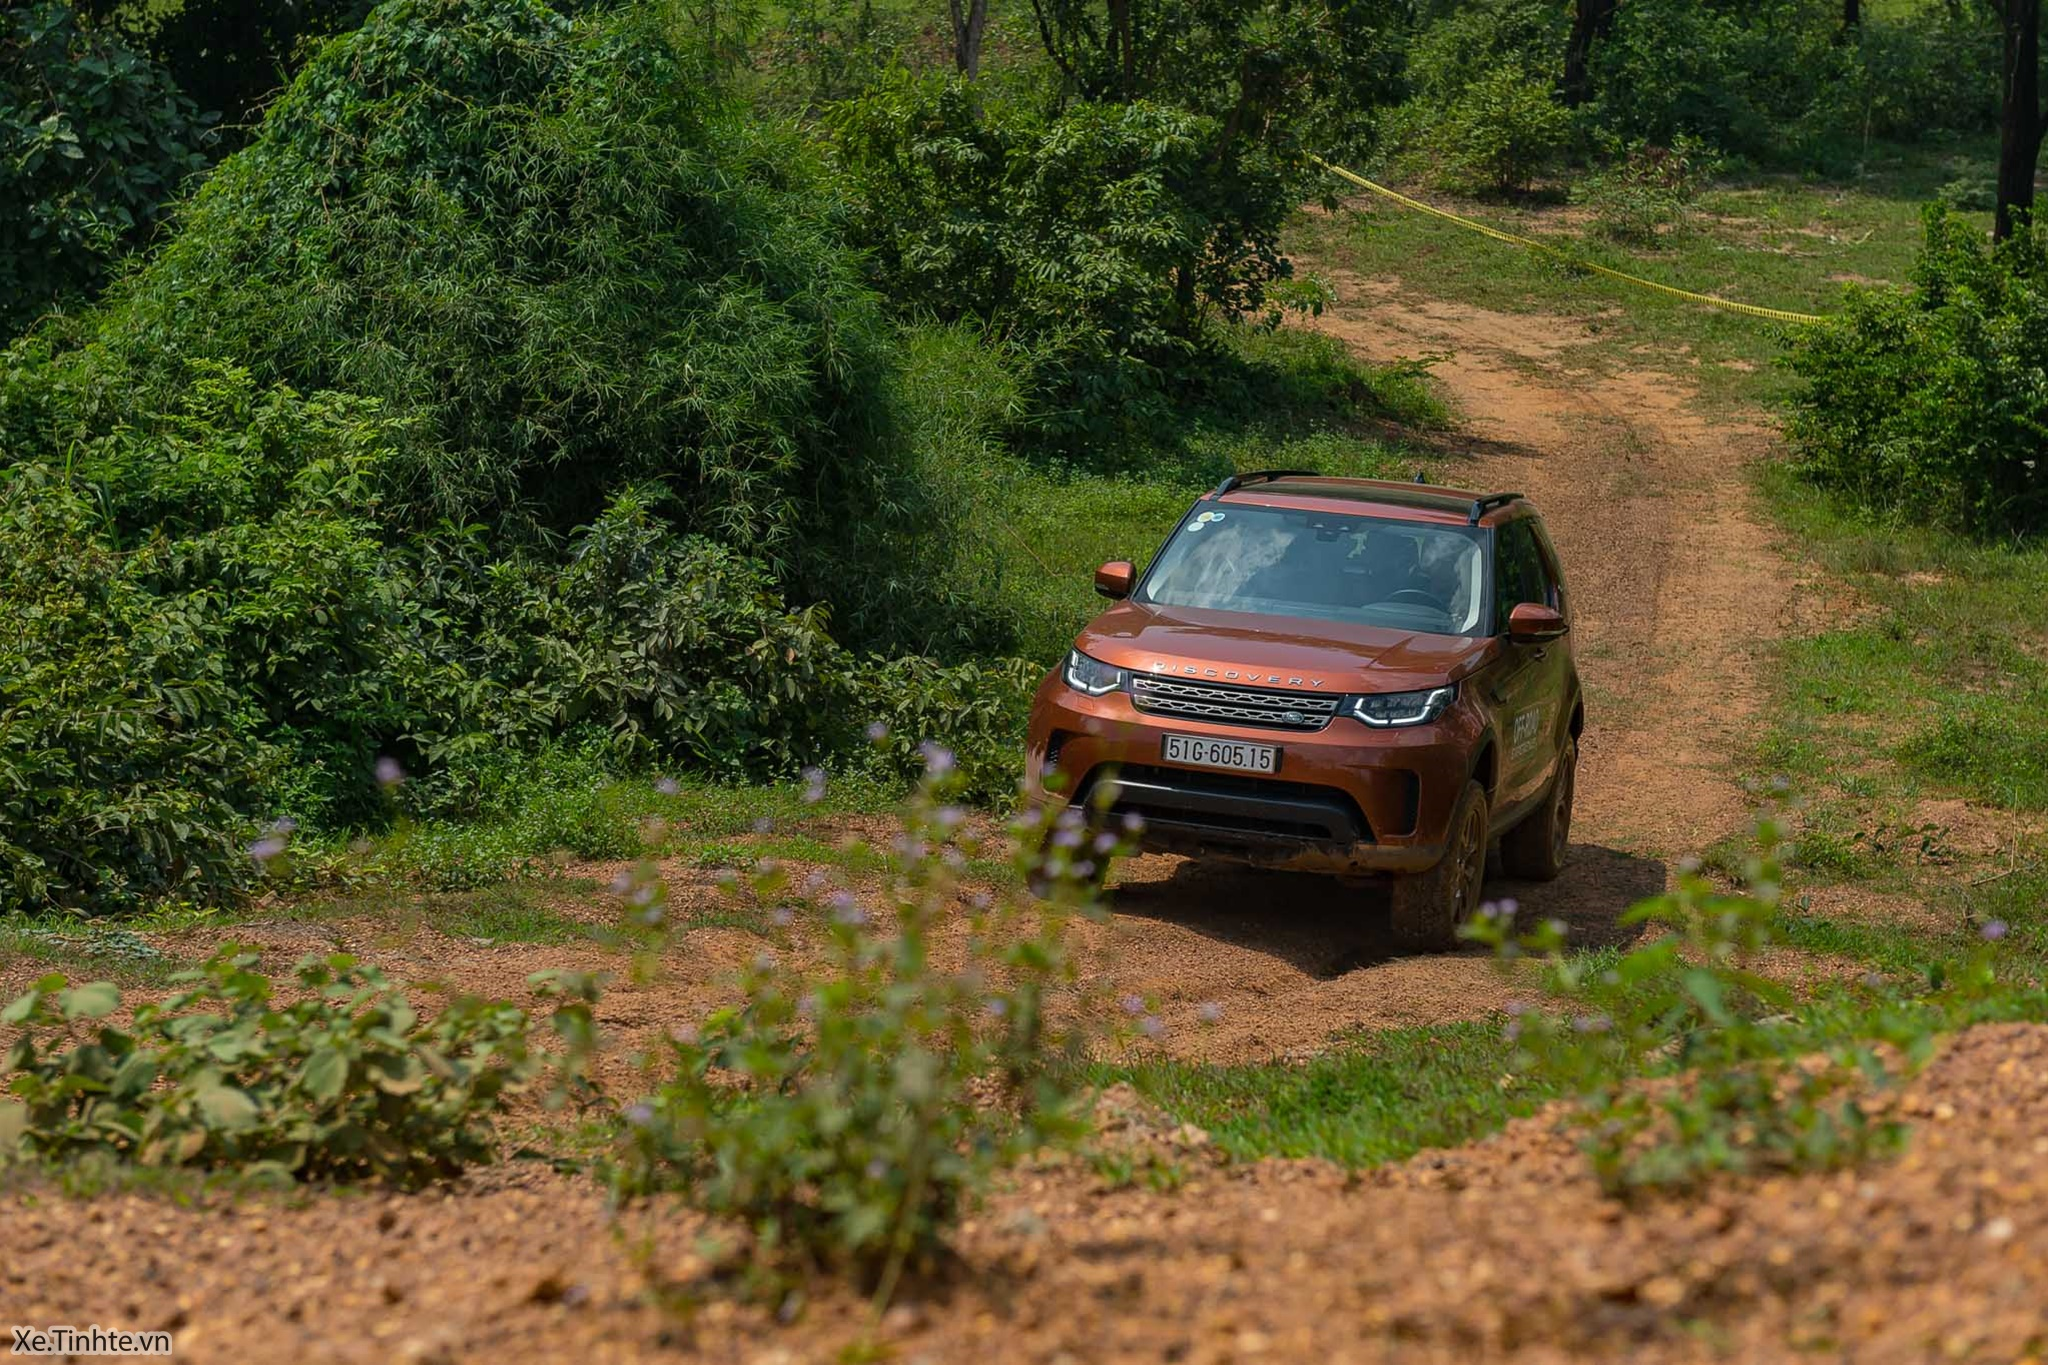 Land_Rover_Off-road_Experience _2018_Xe_Tinhte-020.jpg